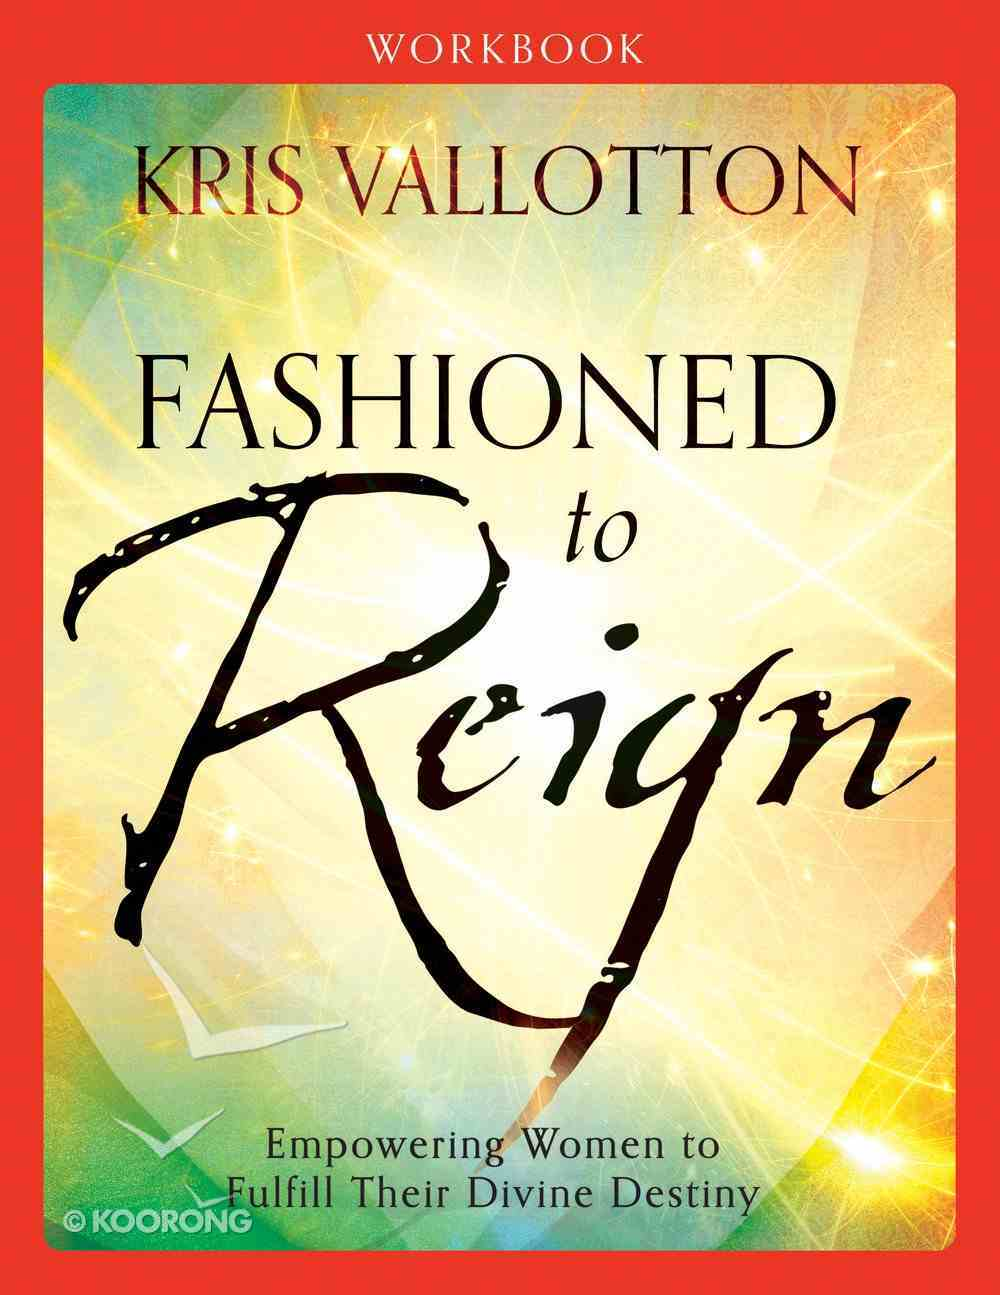 Fashioned to Reign: Empowering Women to Fulfill Their Divine Destiny (Workbook) Paperback